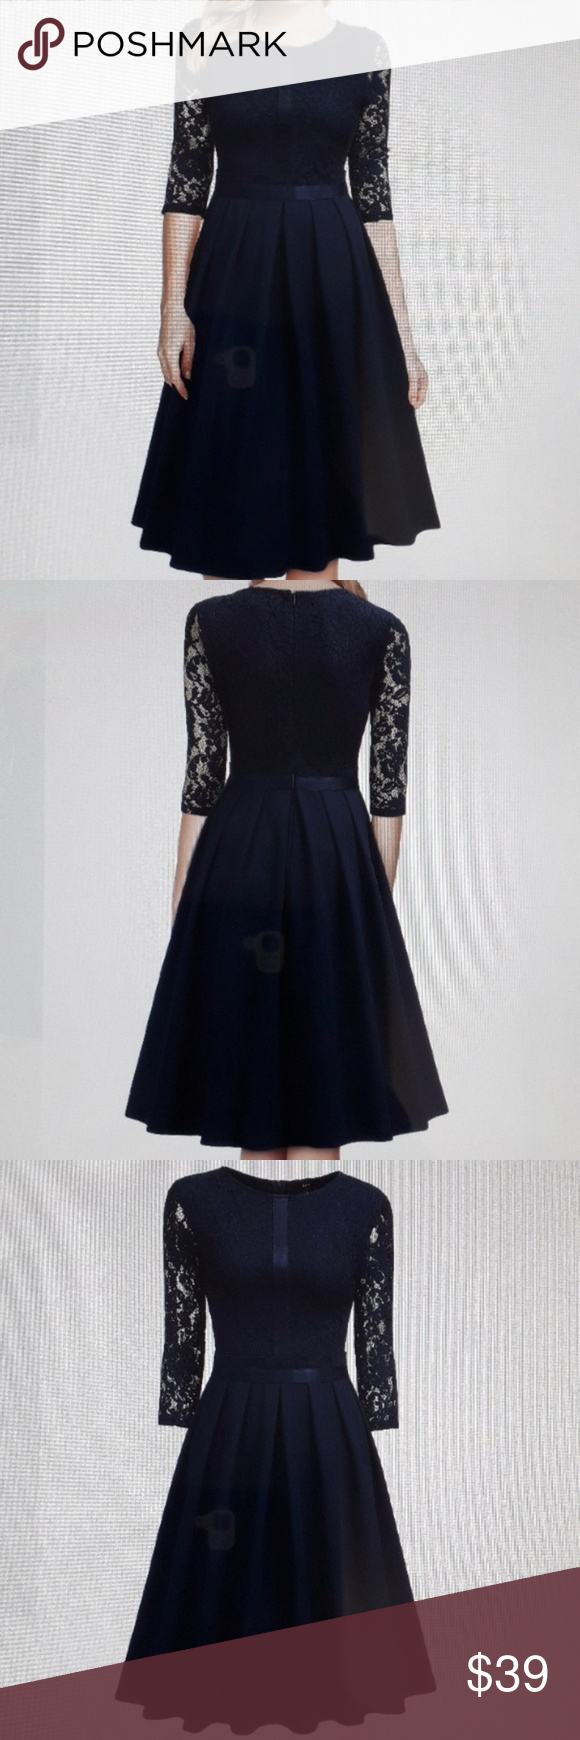 NWT Miusol Women's half floral lace DRess Final Asking Price NWT Miusol Women's half floral lace evening cocktail party dress in color Navy Blue Bust/Chest- 38